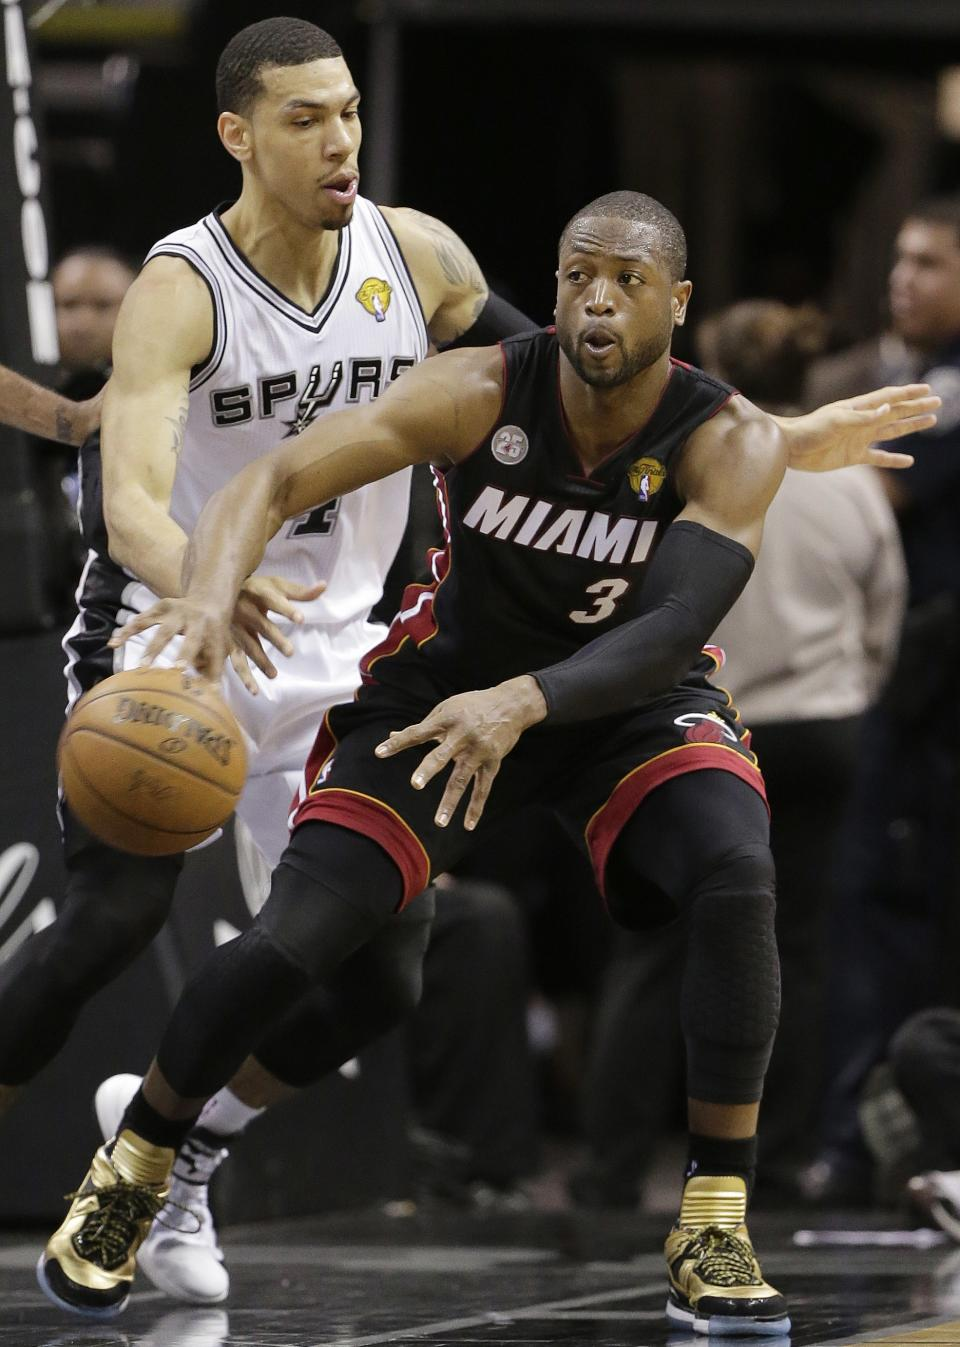 Miami Heat's Dwyane Wade (3) passes around San Antonio Spurs' Danny Green (4) during the first half at Game 5 of the NBA Finals basketball series, Sunday, June 16, 2013, in San Antonio. (AP Photo/Eric Gay)